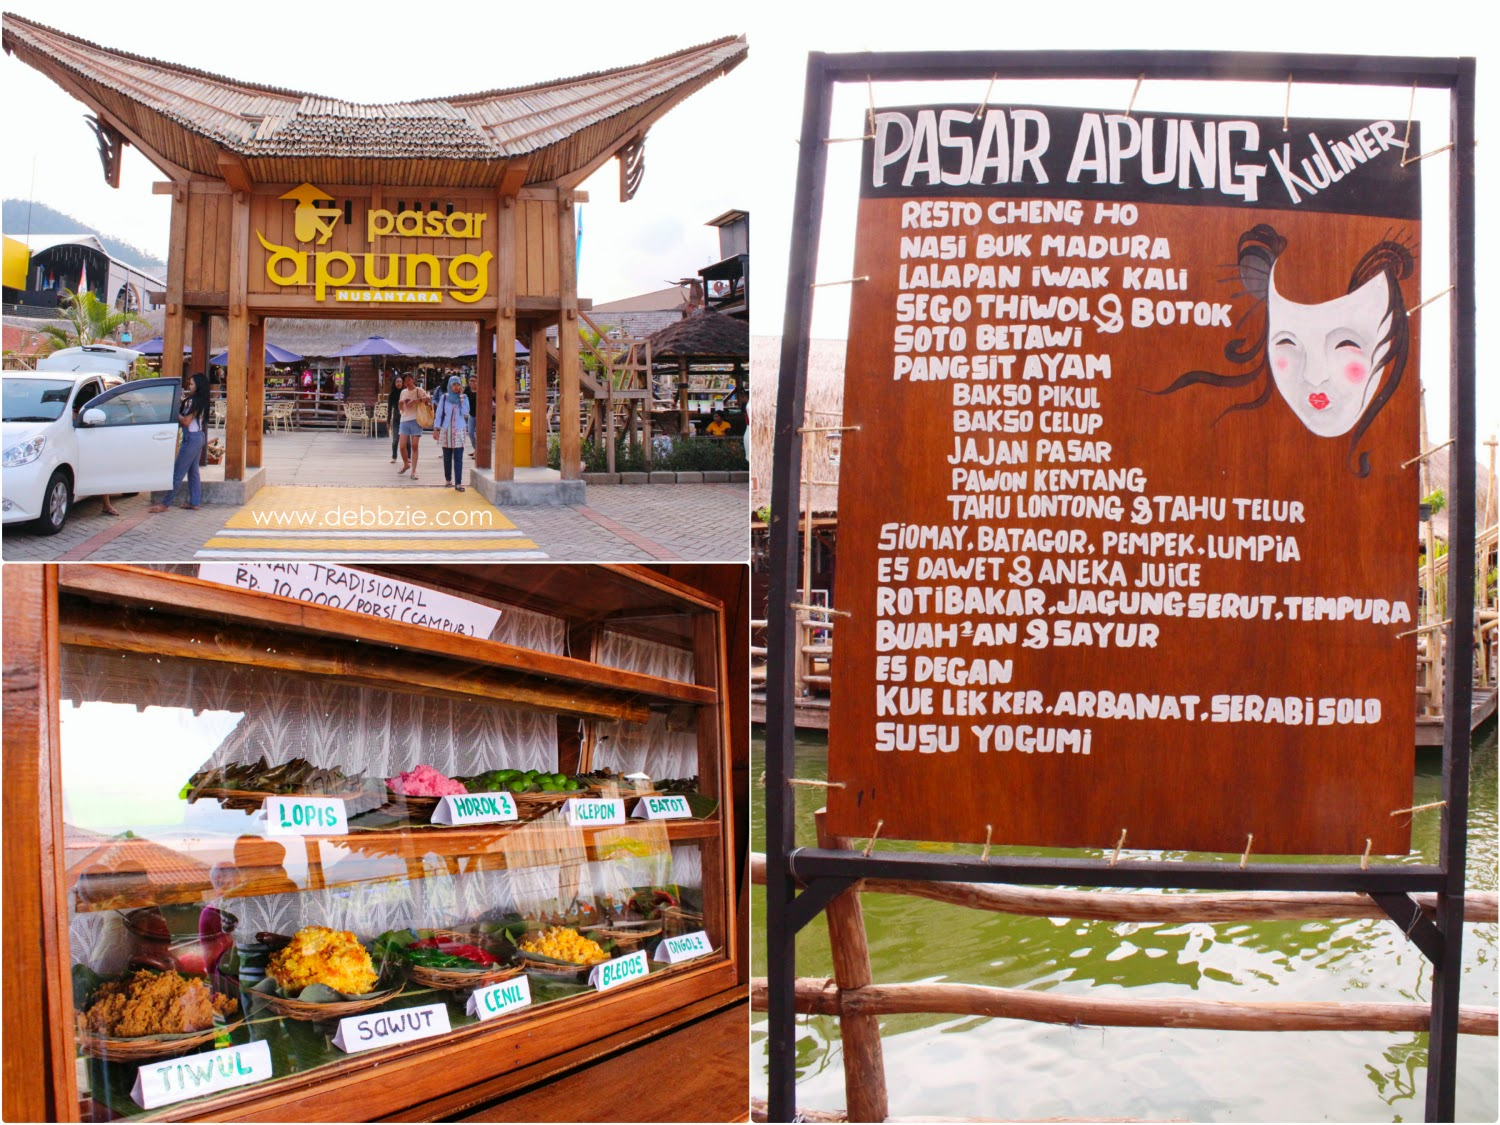 My Time Capsule Indonesia Museum Angkut A Haven For Vehicle Lovers Ini Buk Lho Pasar Apung Floating Market